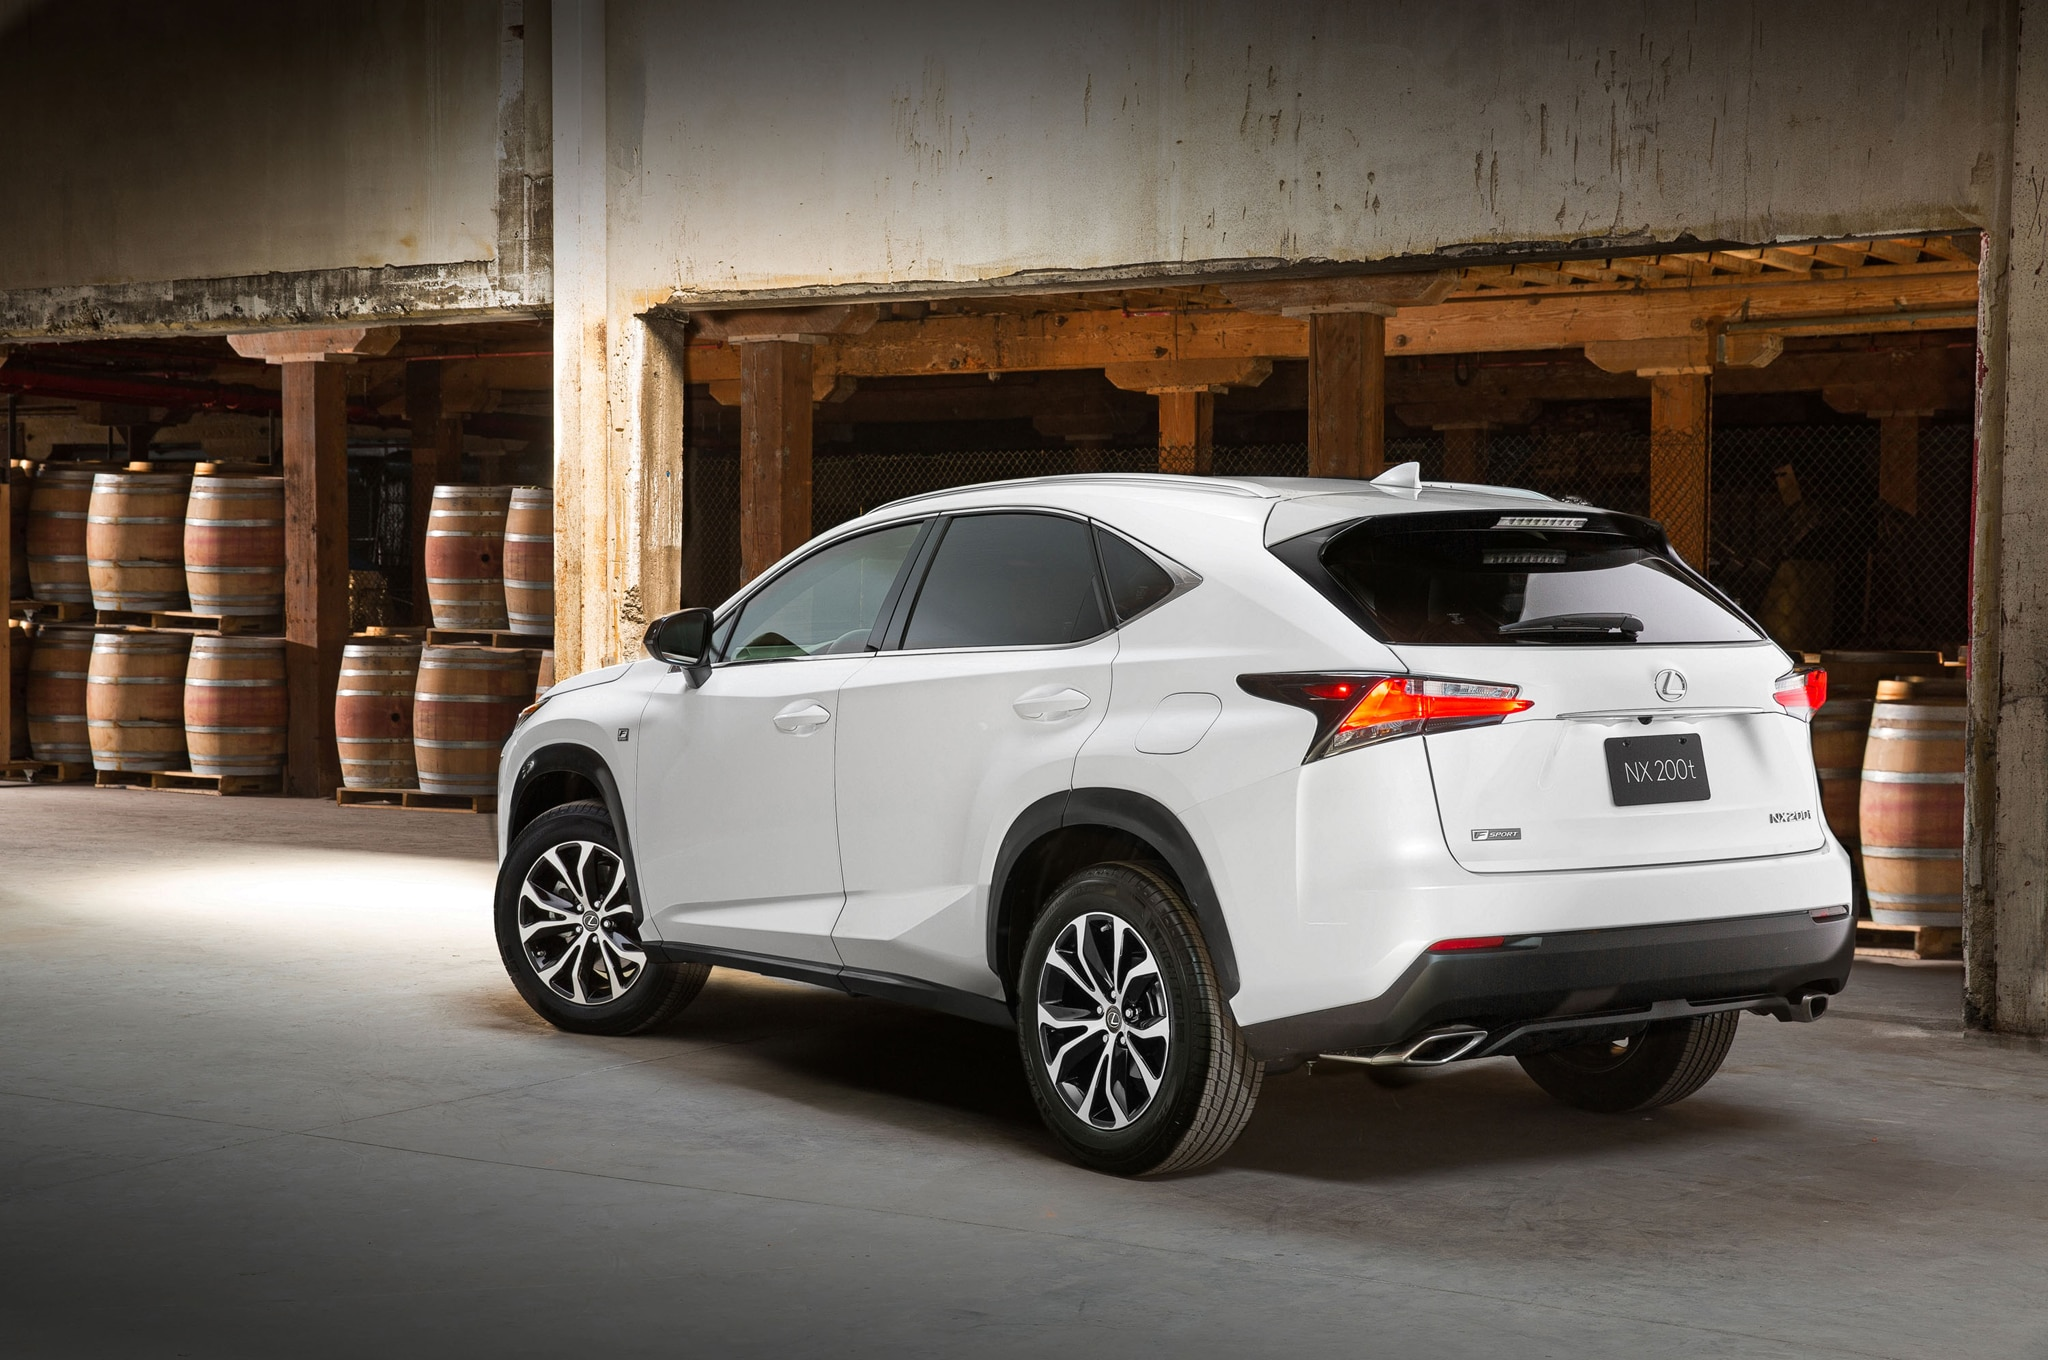 2015 Lexus NX 200t And NX 300h Details Revealed